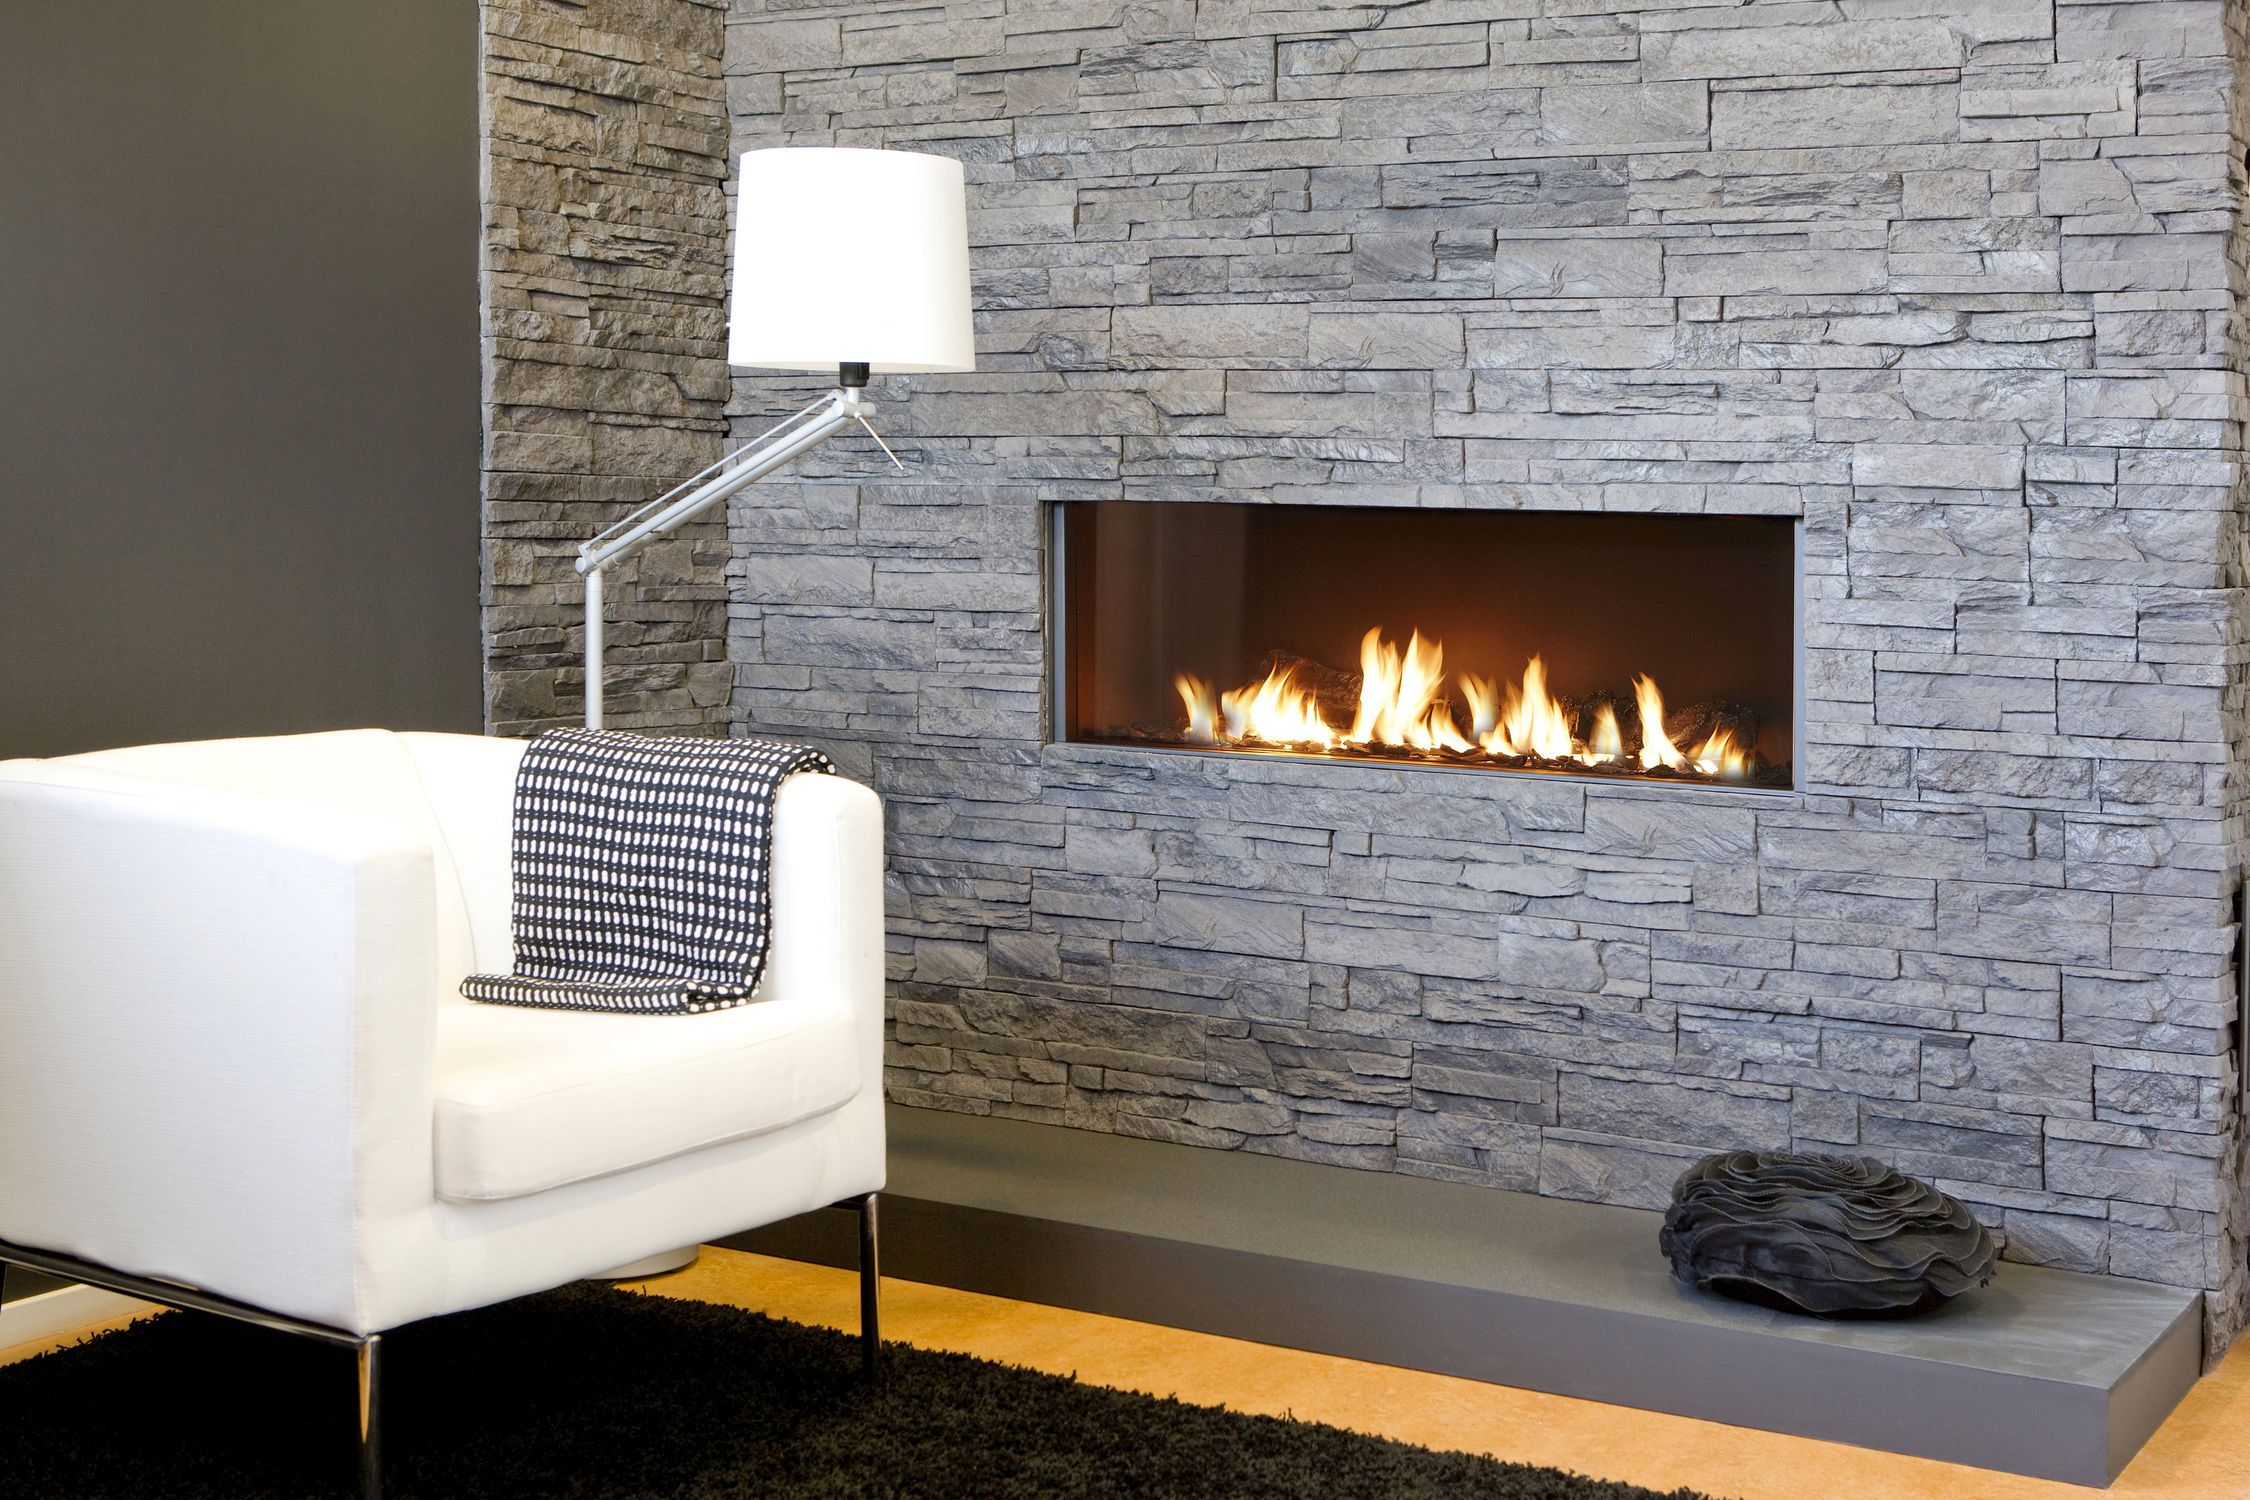 Stacked Wall With White Sofa And Stylish Standing Floor Lamp Living Room Corner Contemporary Modern Electric Fireplace Contemporary Gas Fireplace Gas Fireplace